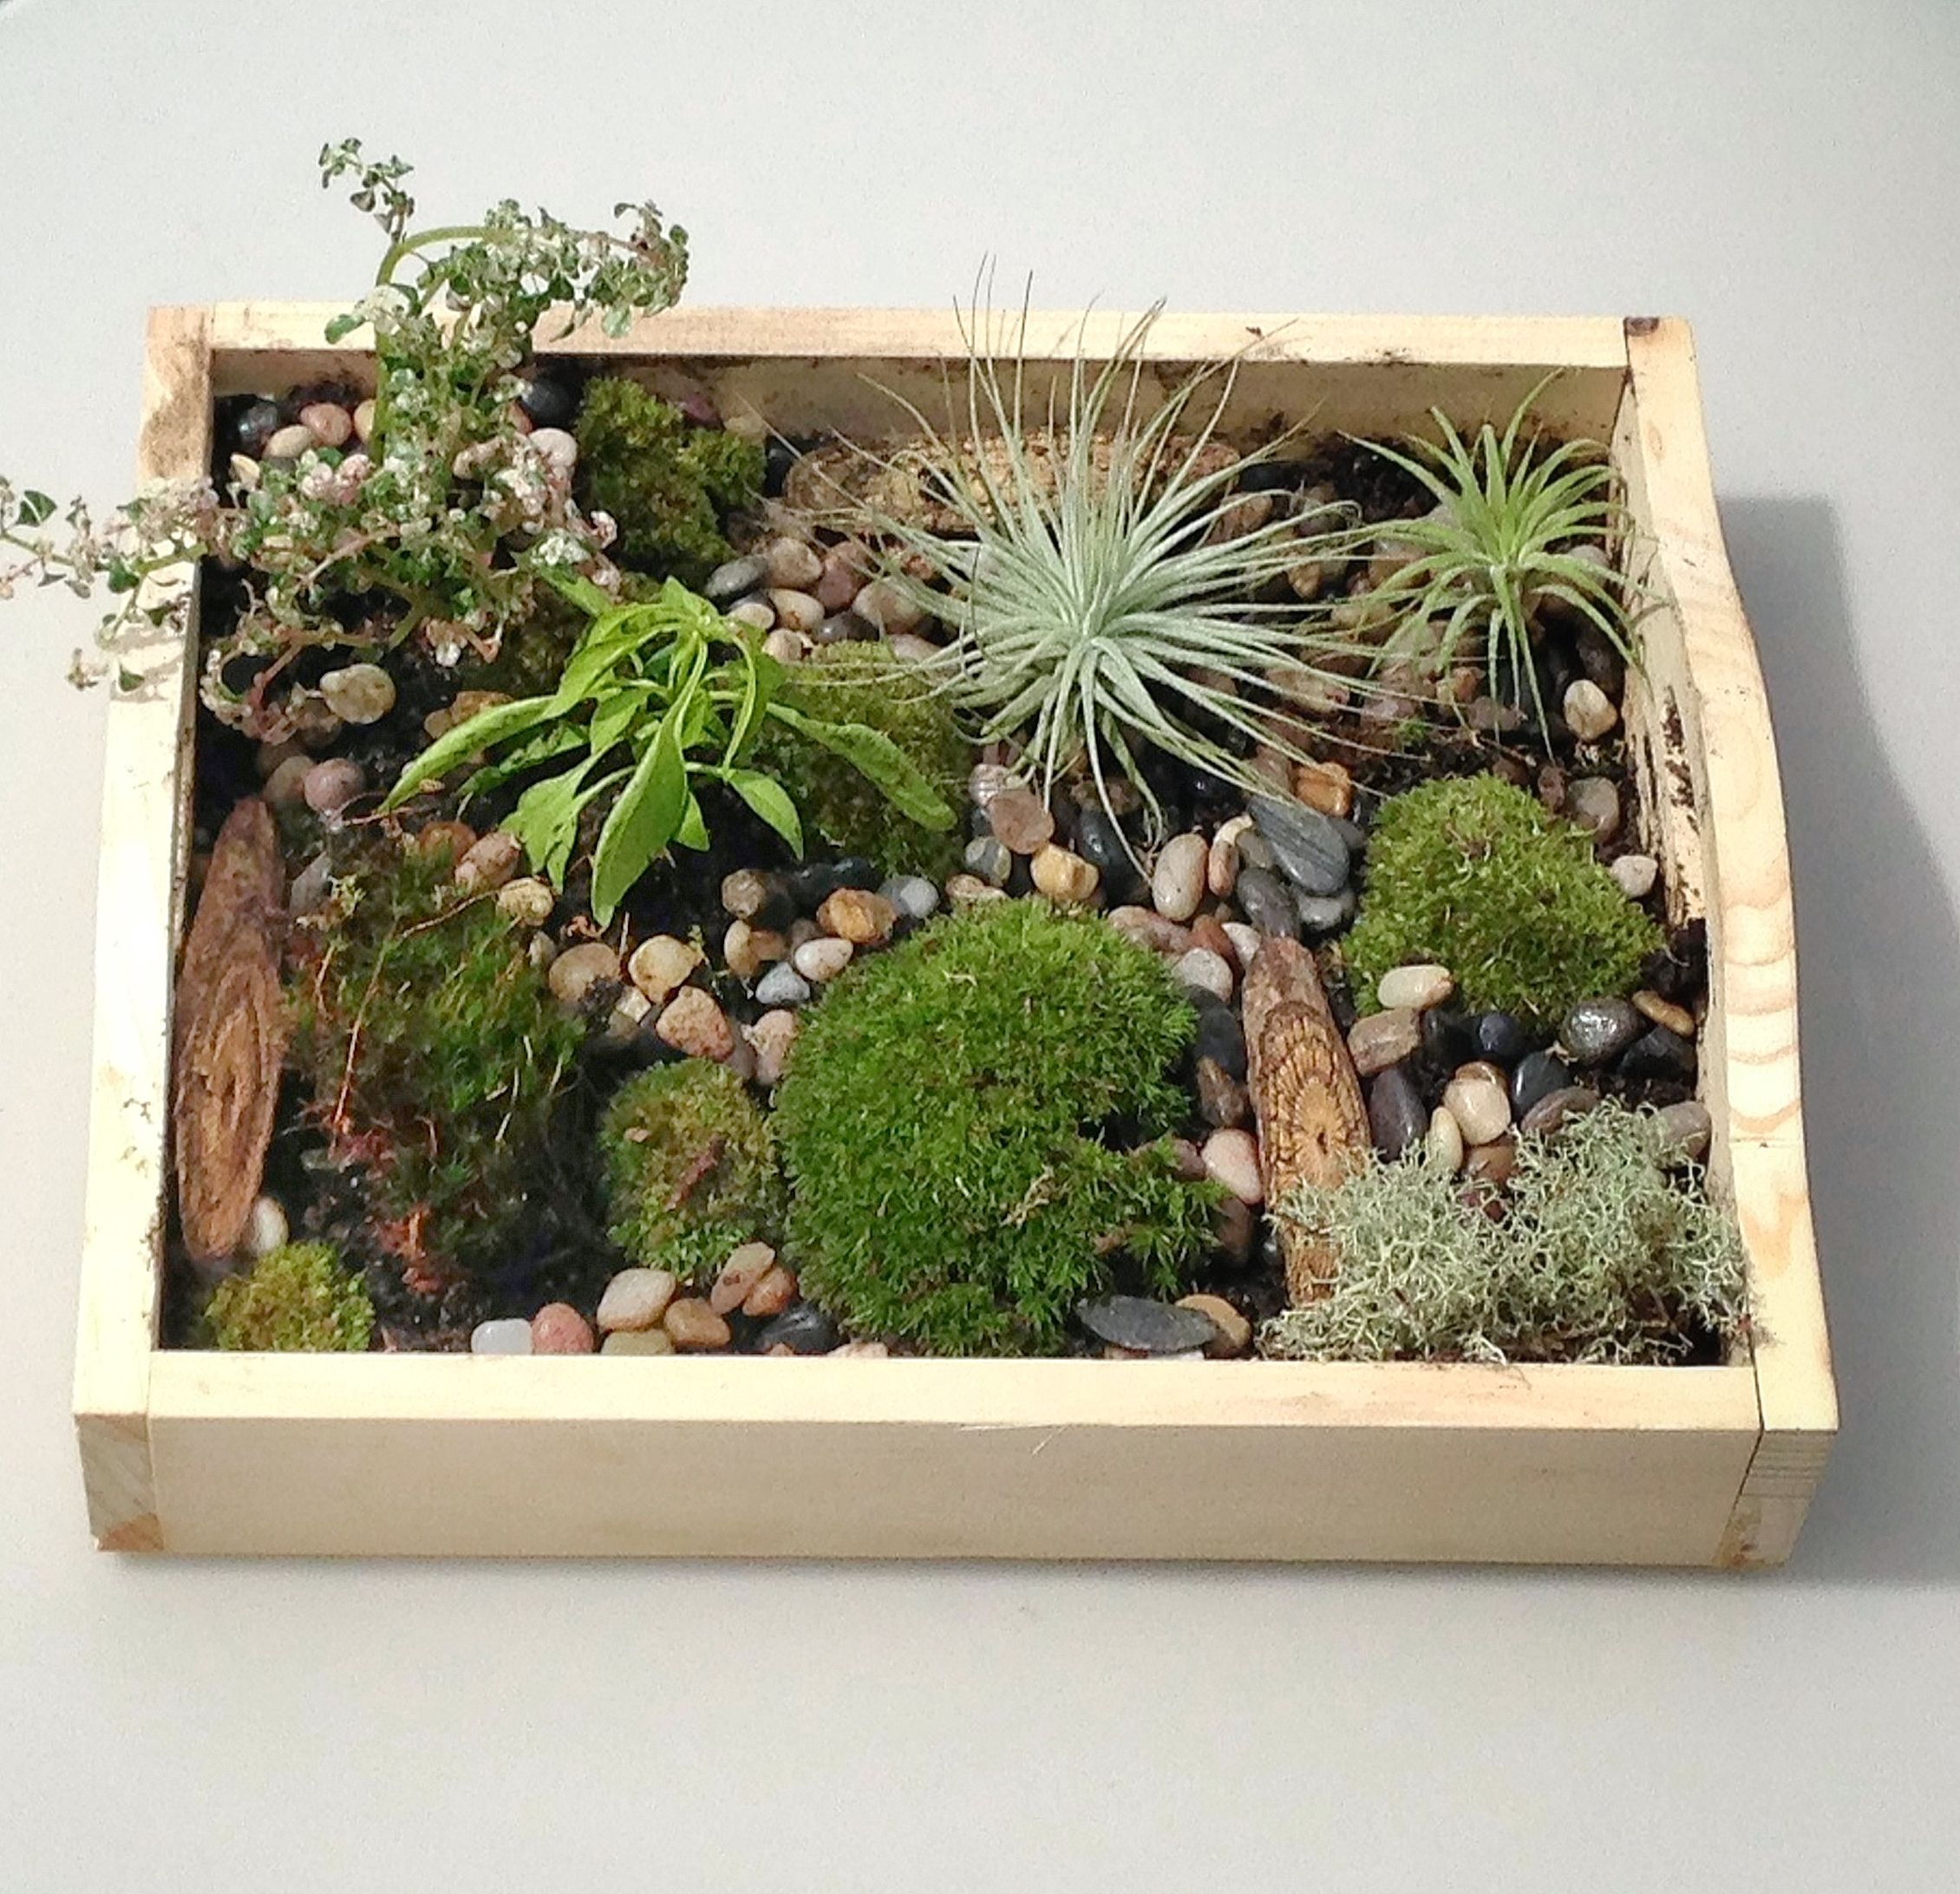 The Tray, Air Plants, Live Moss And